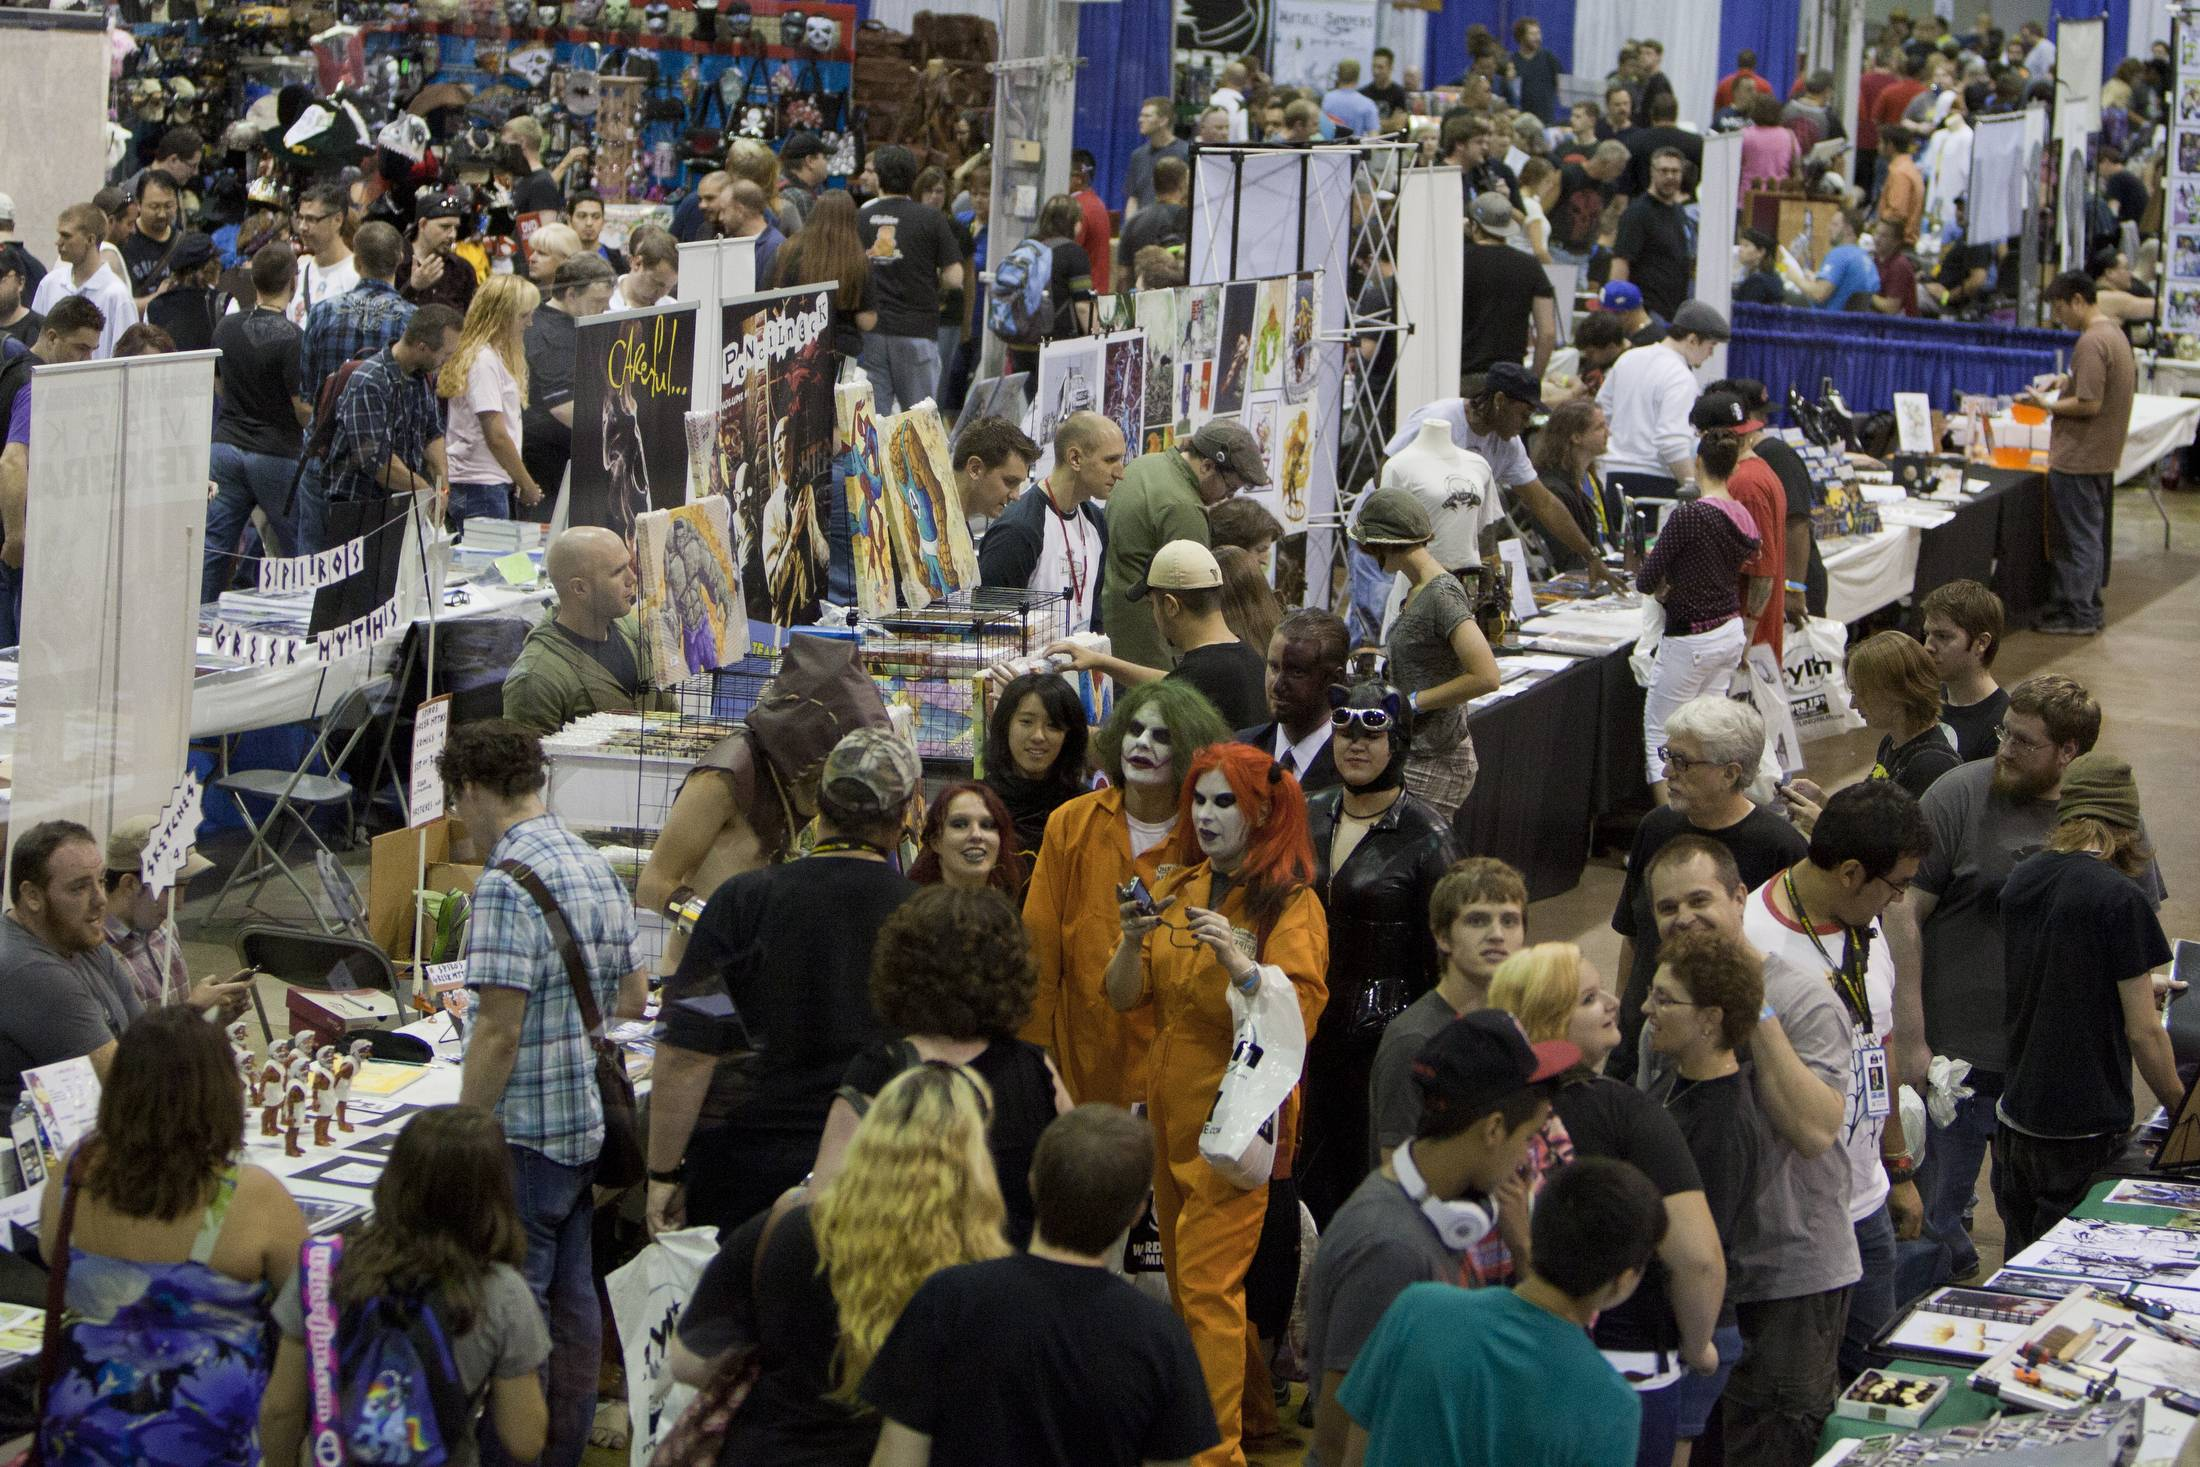 The Wizard World Chicago Comic Con is expected to draw tens of thousands to the Donald E. Stephens Convention Center in Rosemont this weekend.